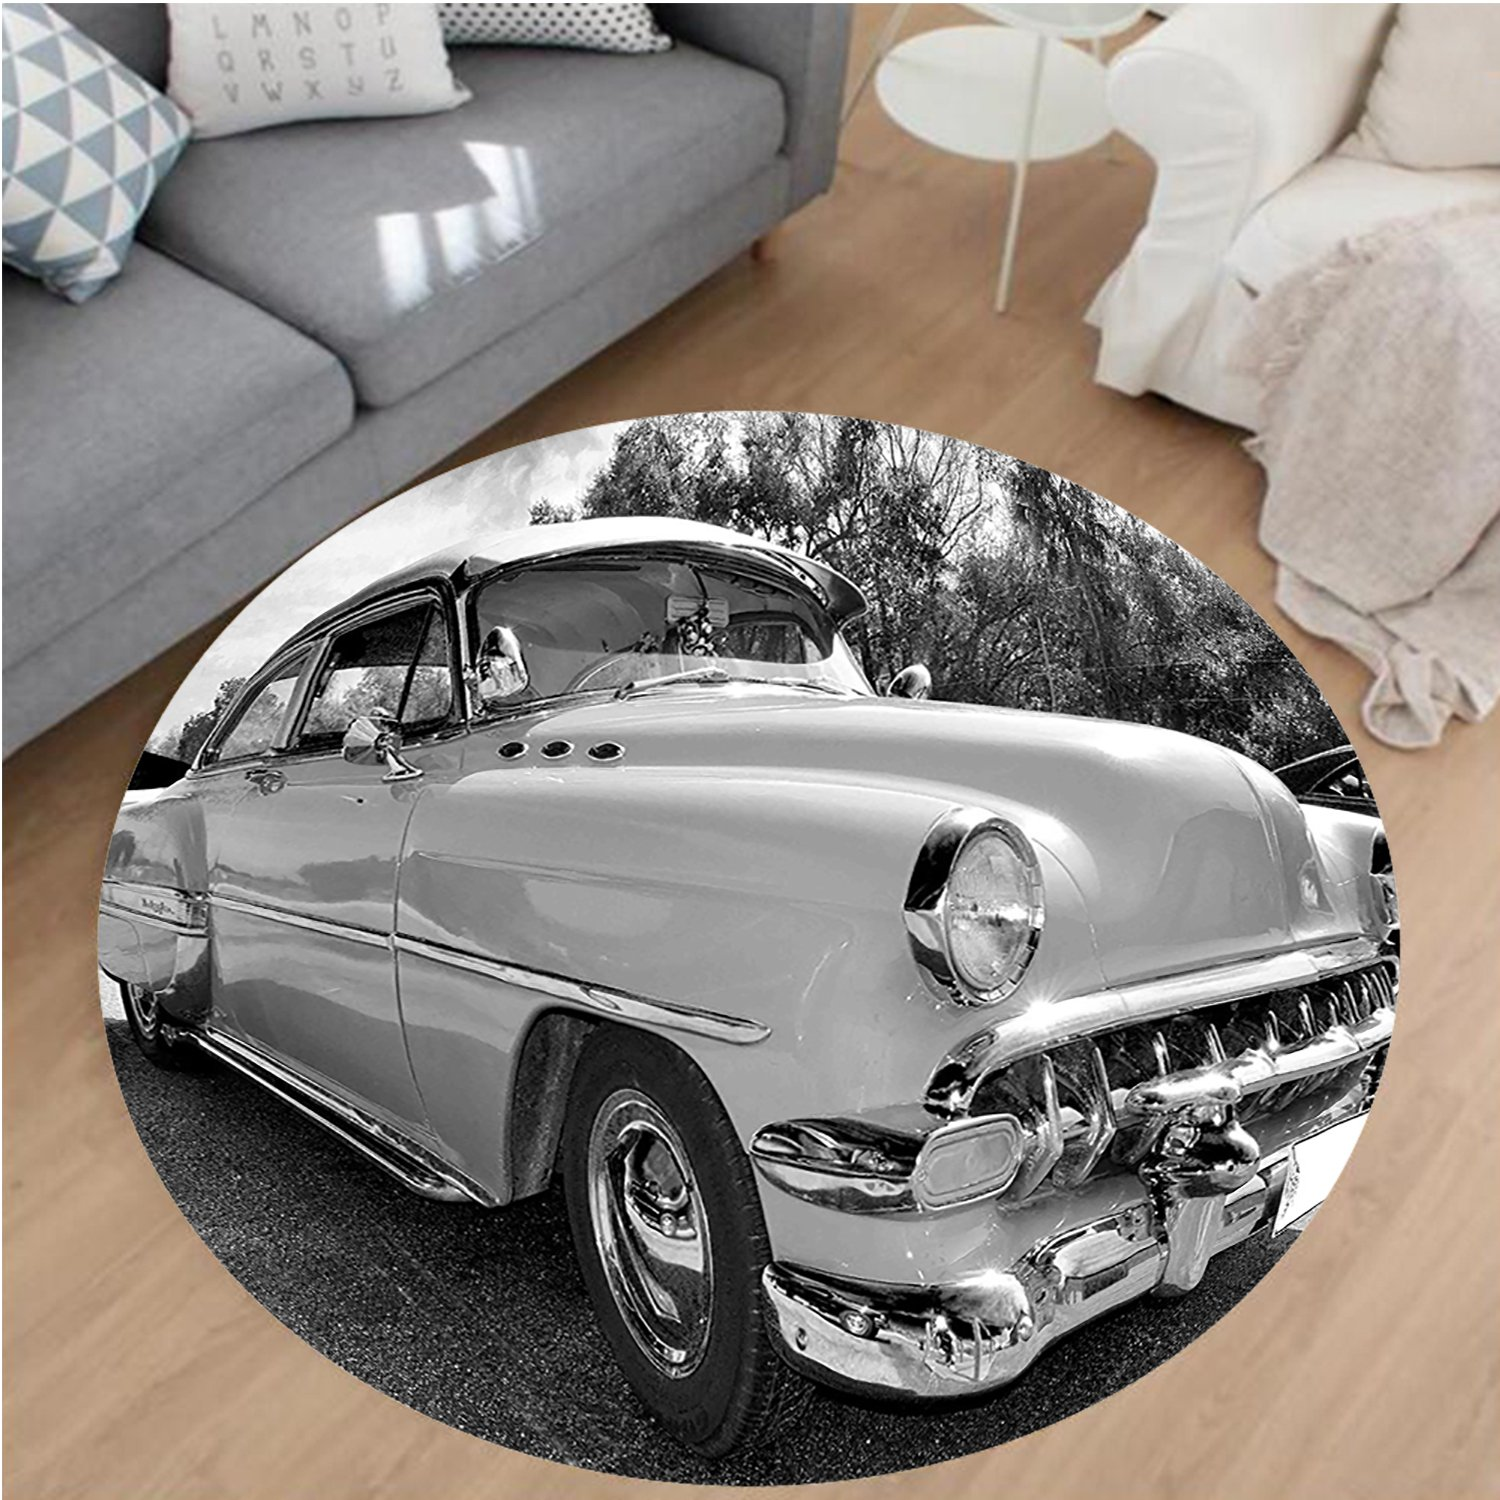 Nalahome Modern Flannel Microfiber Non-Slip Machine Washable Round Area Rug-0s Retro Classic Pin Up Style Cars in Hollywood Movies Image Artwork Black White and Gray area rugs Home Decor-Round 67''